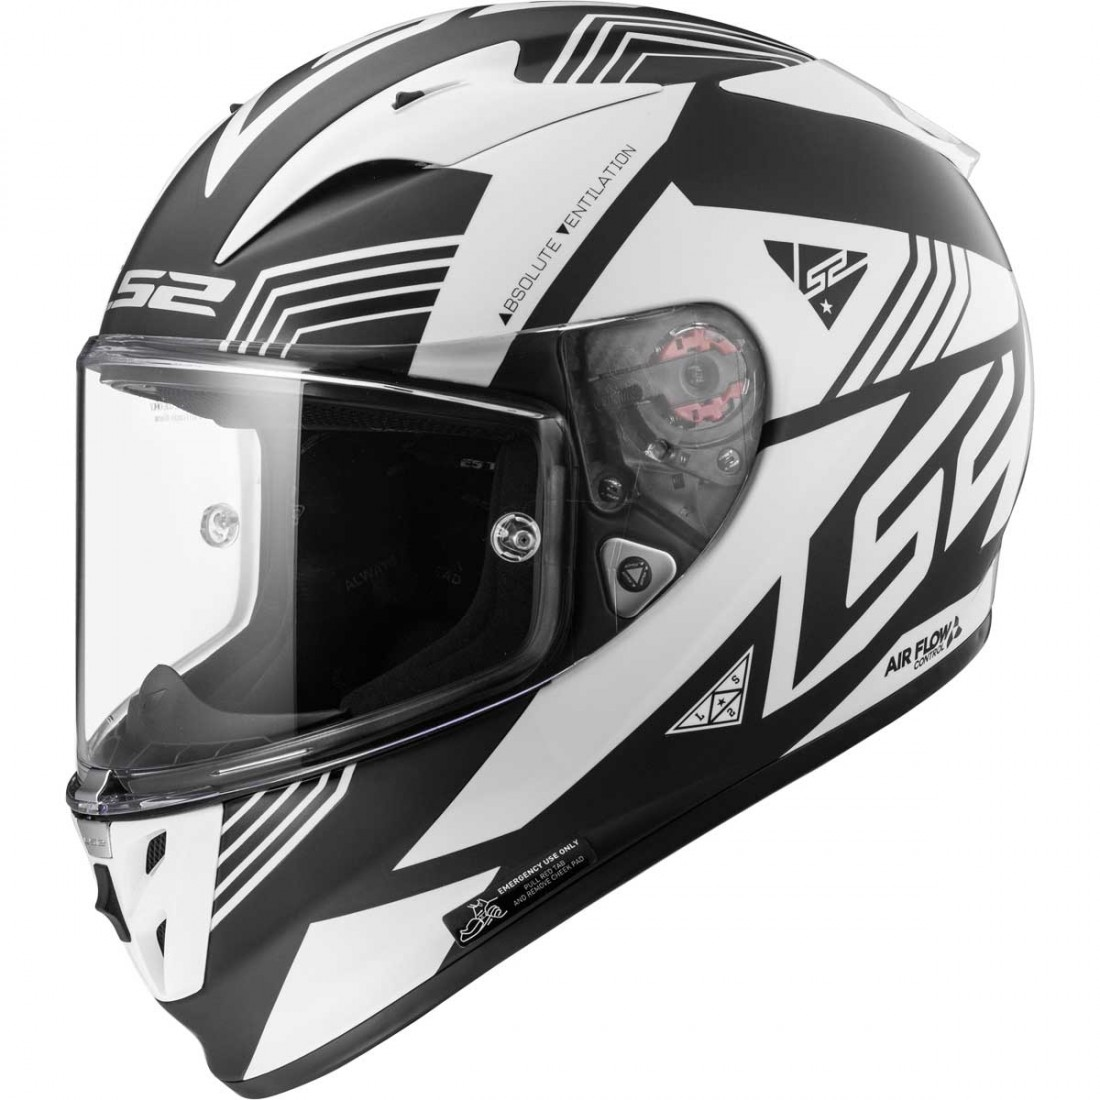 Casco LS2 FF323 Arrow R Evo Neon Matt Black   White · Motocard b34df53cda1